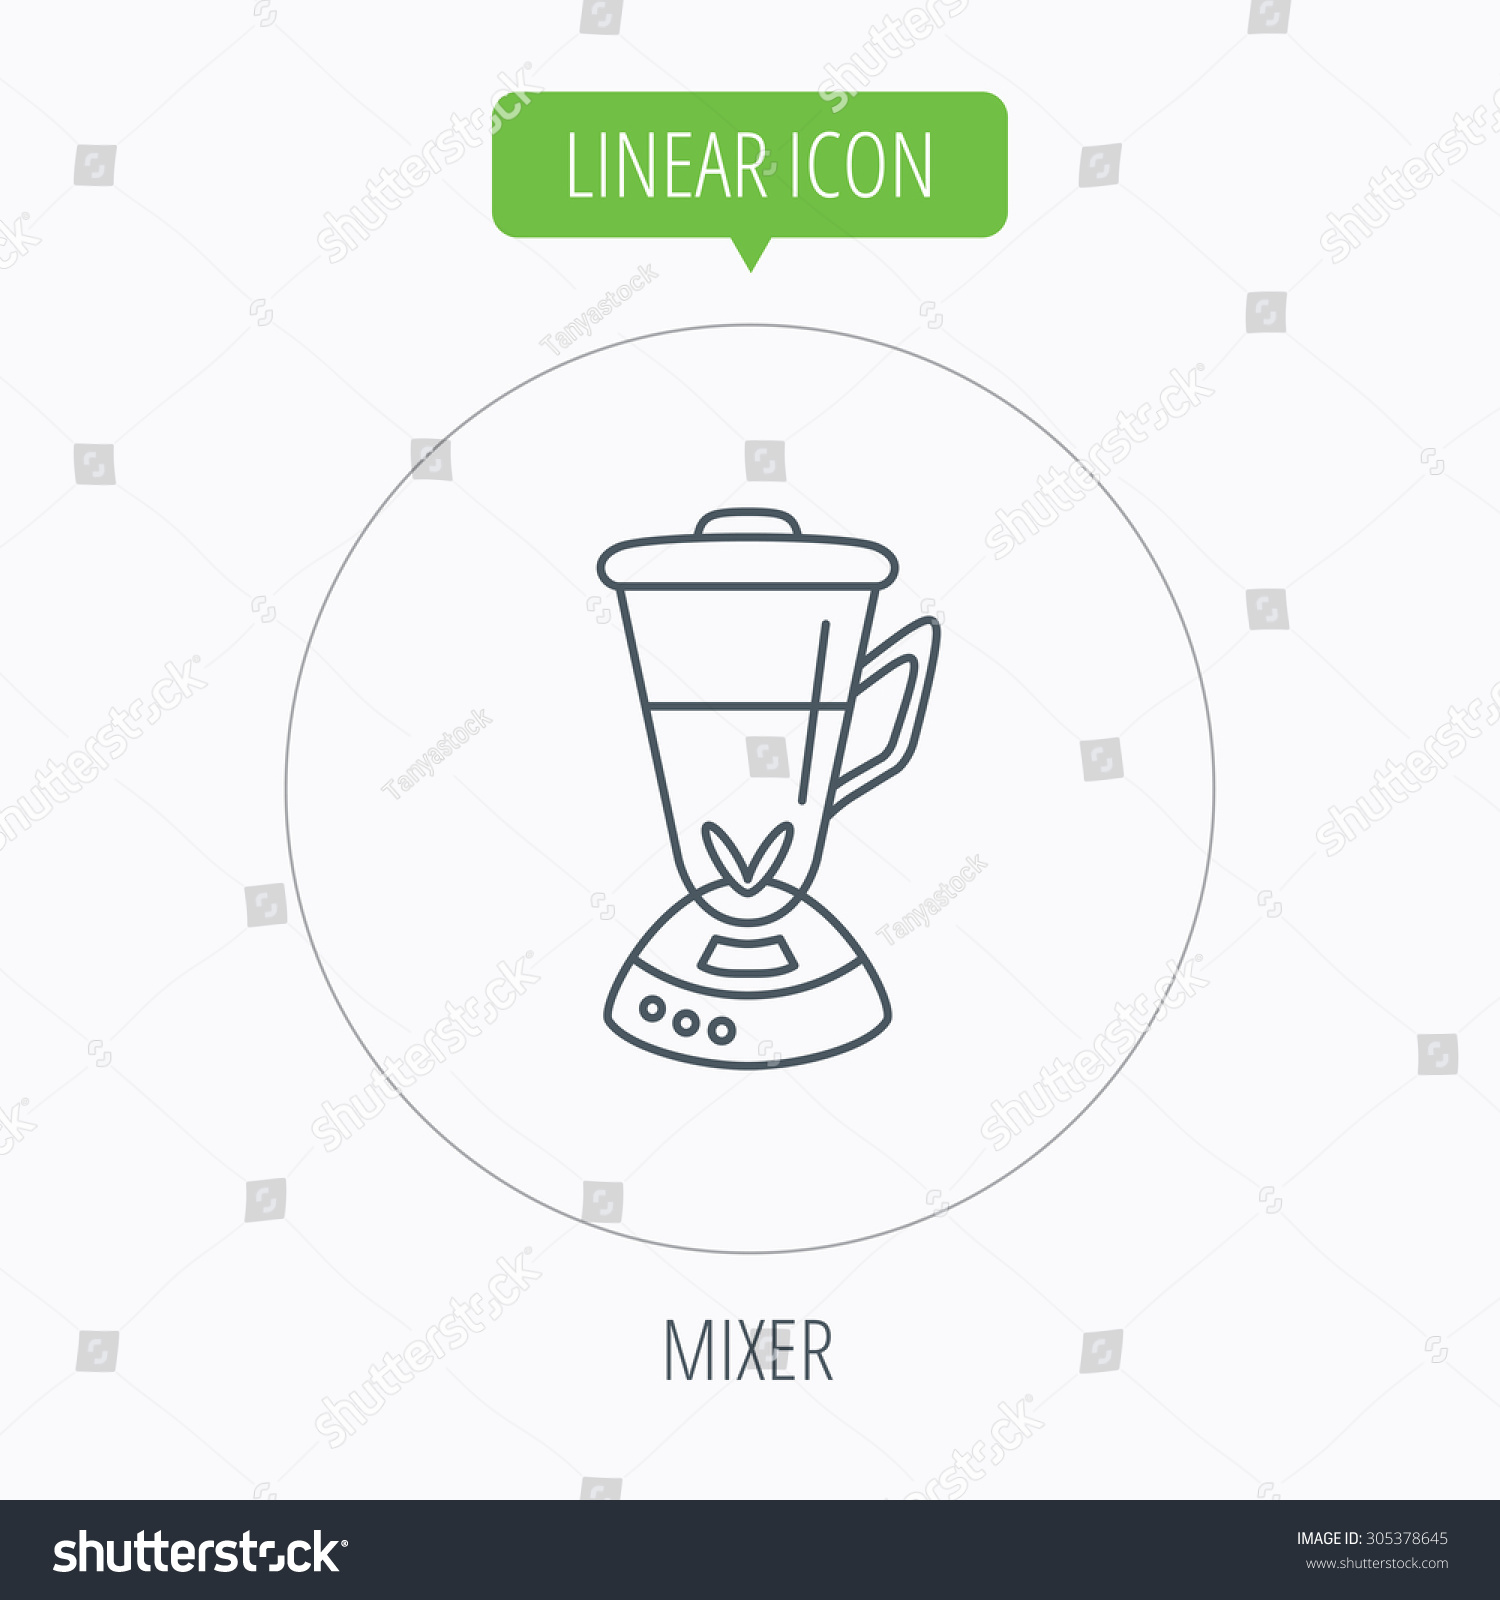 Electric Mixer Outline ~ Mixer icon blender sign kitchen electric tool symbol